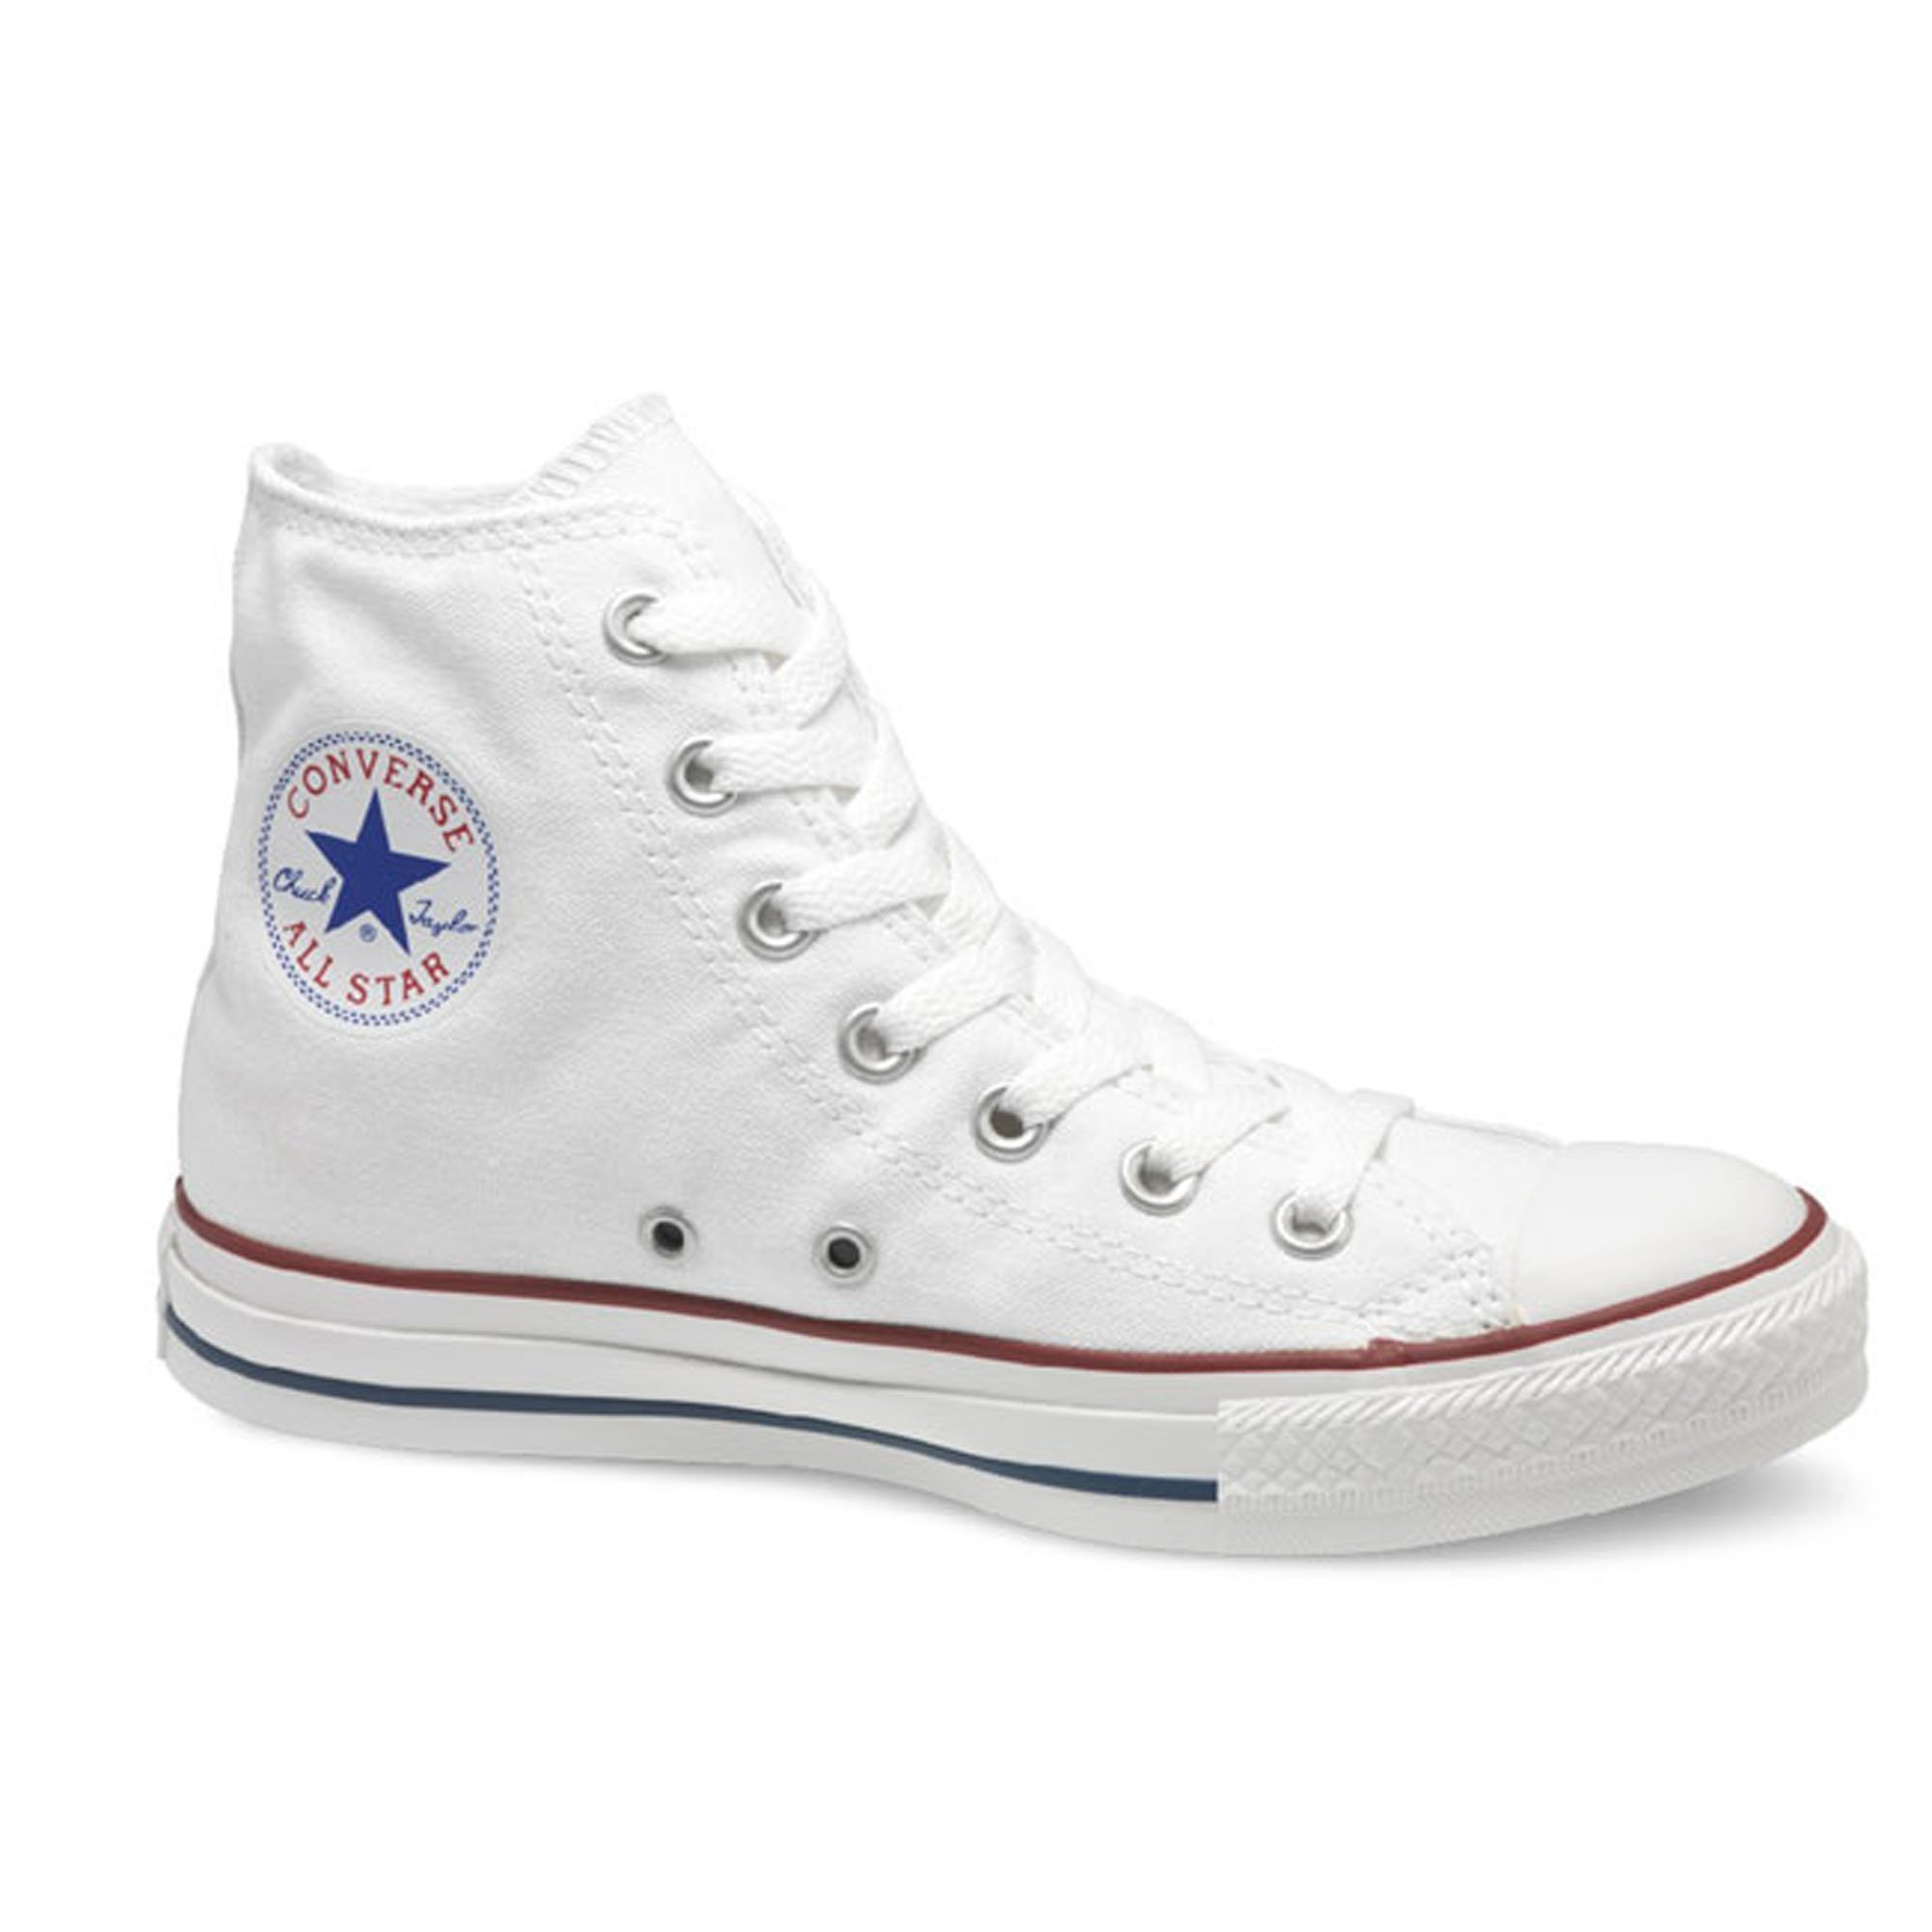 NS. 6921 CONVERSE All Star Hi Canvas Bianco 95